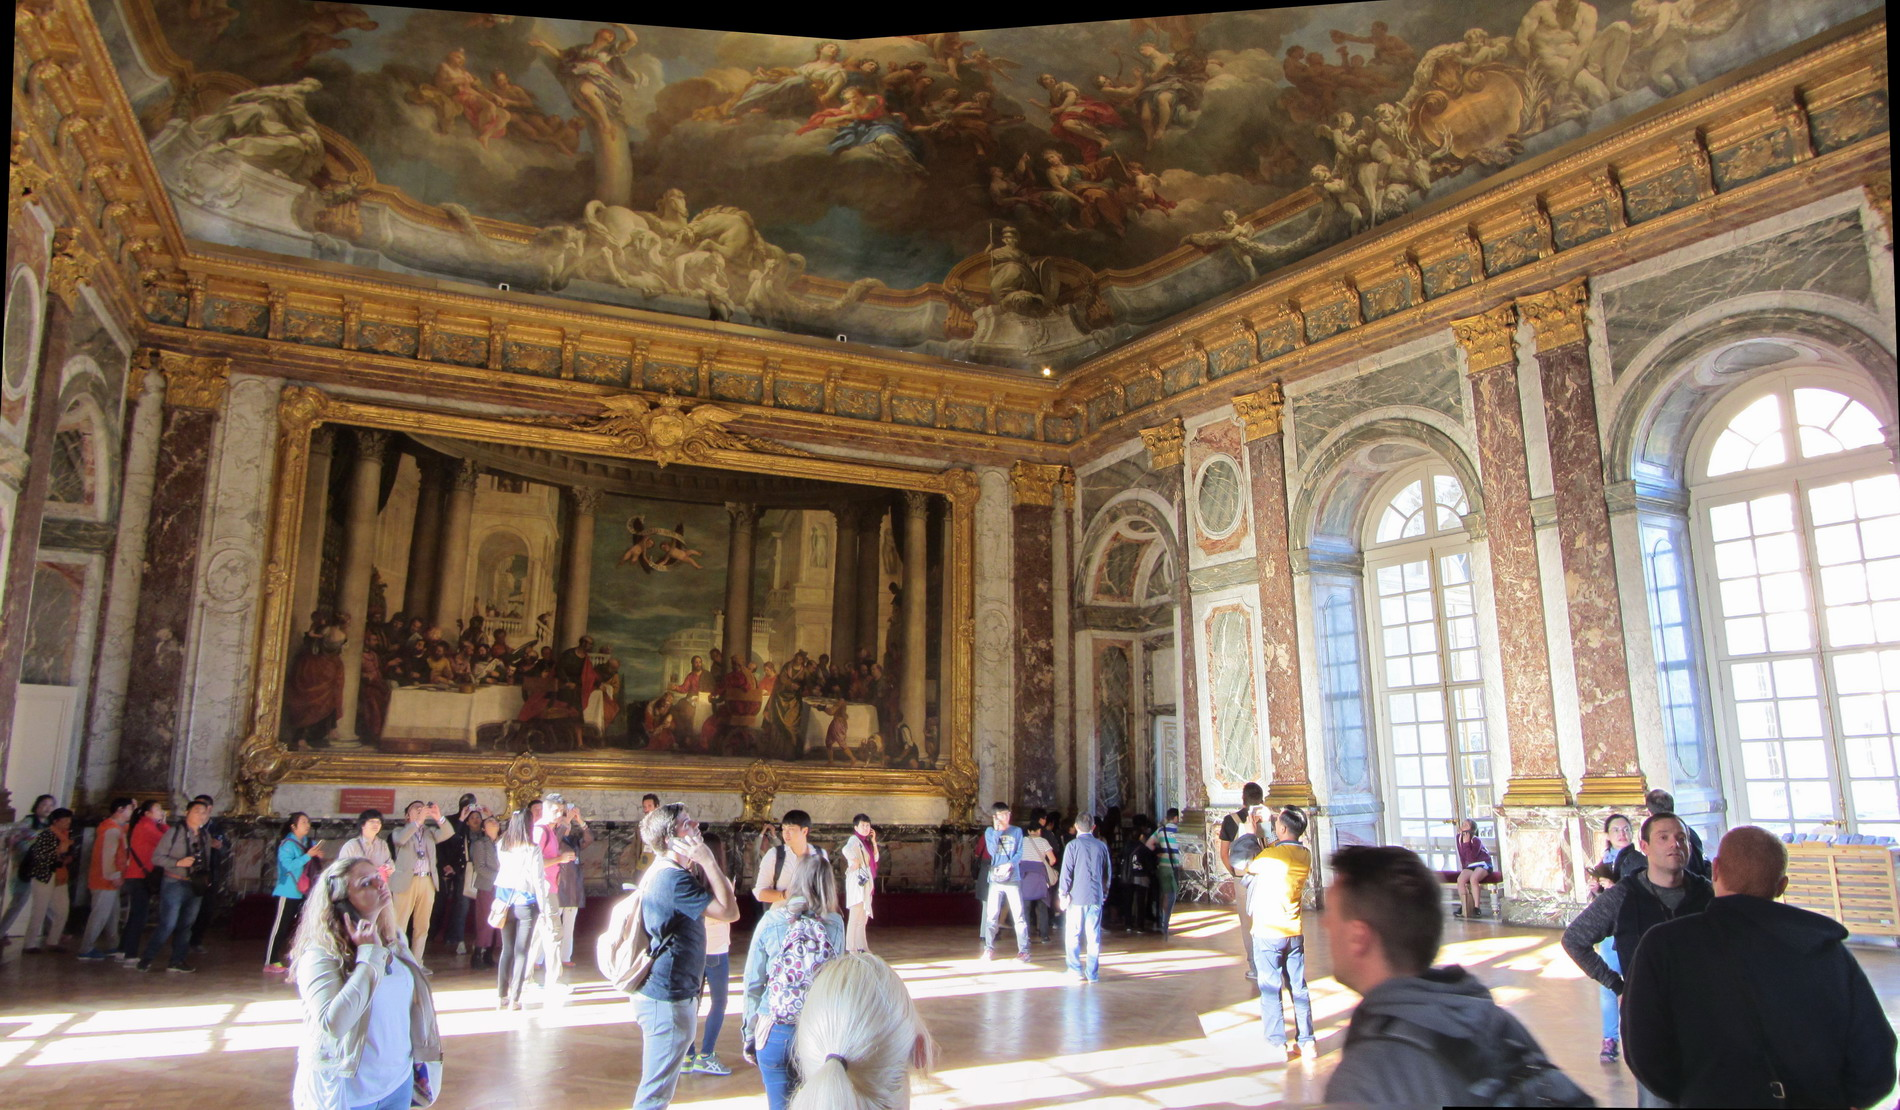 paris 2015 day 2 palace of versailles trailer spotting. Black Bedroom Furniture Sets. Home Design Ideas